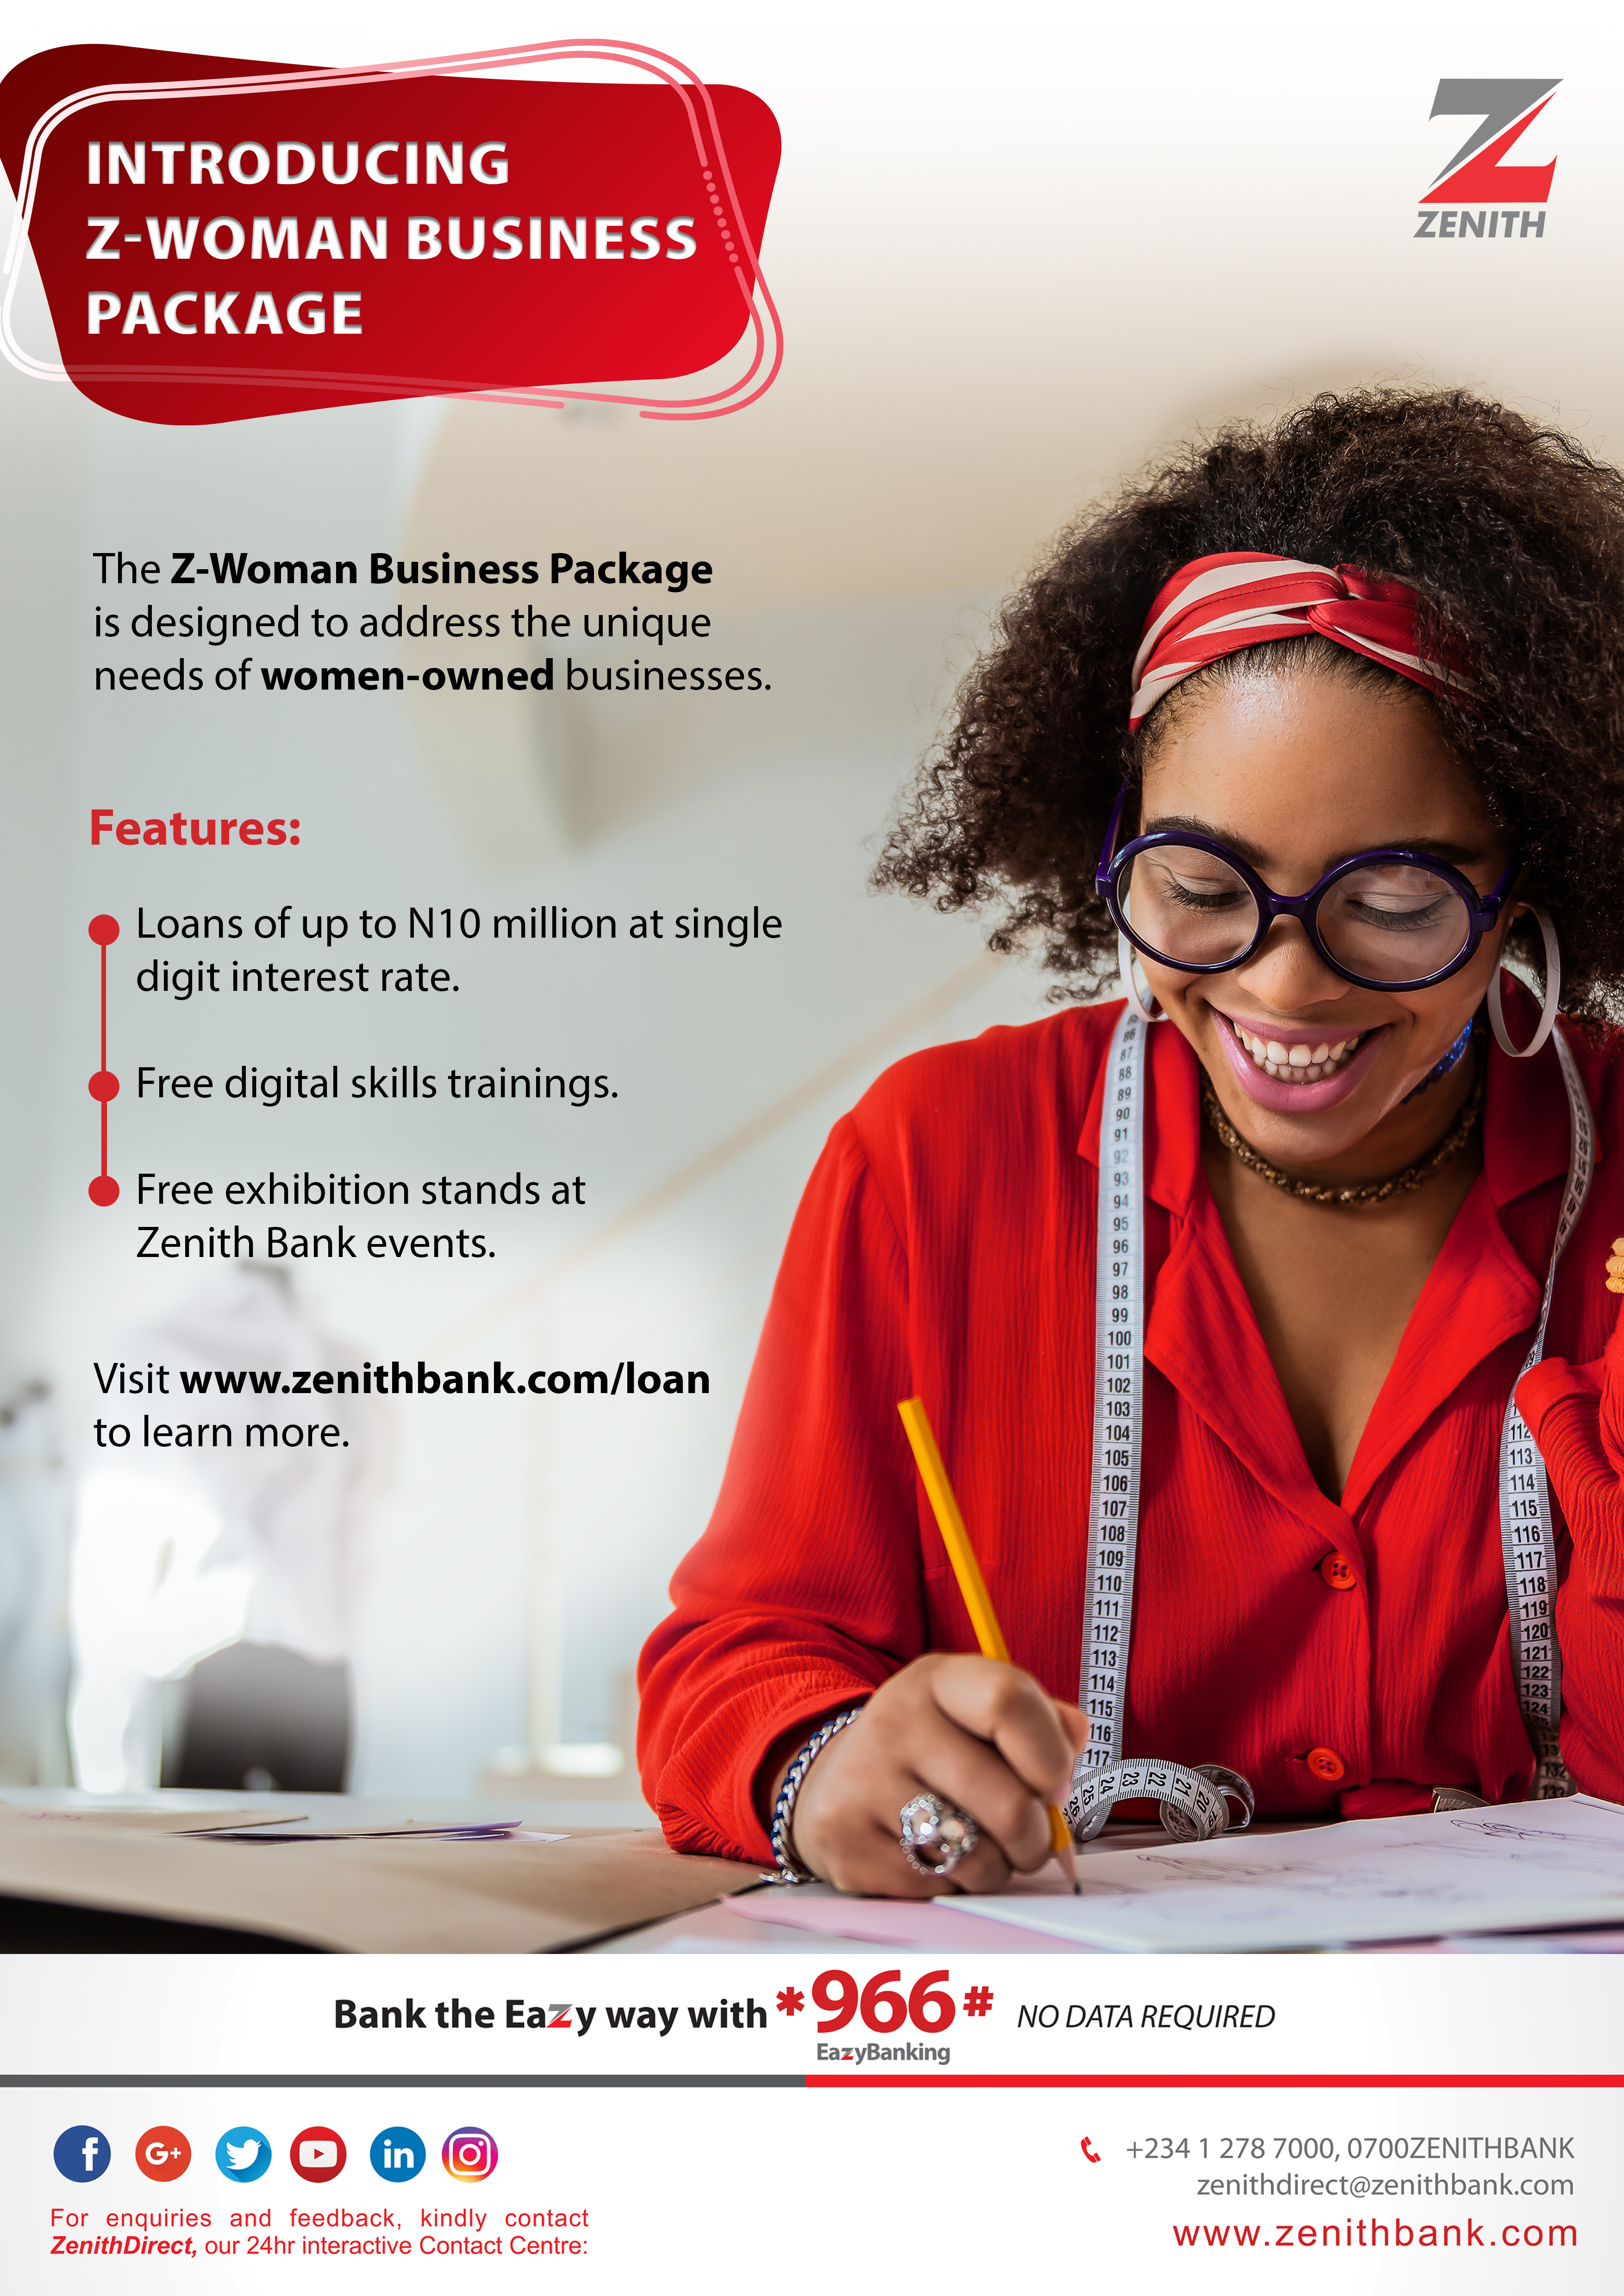 Zenith Bank is Empowering Women with Z-Woman | e-nigeriang.com